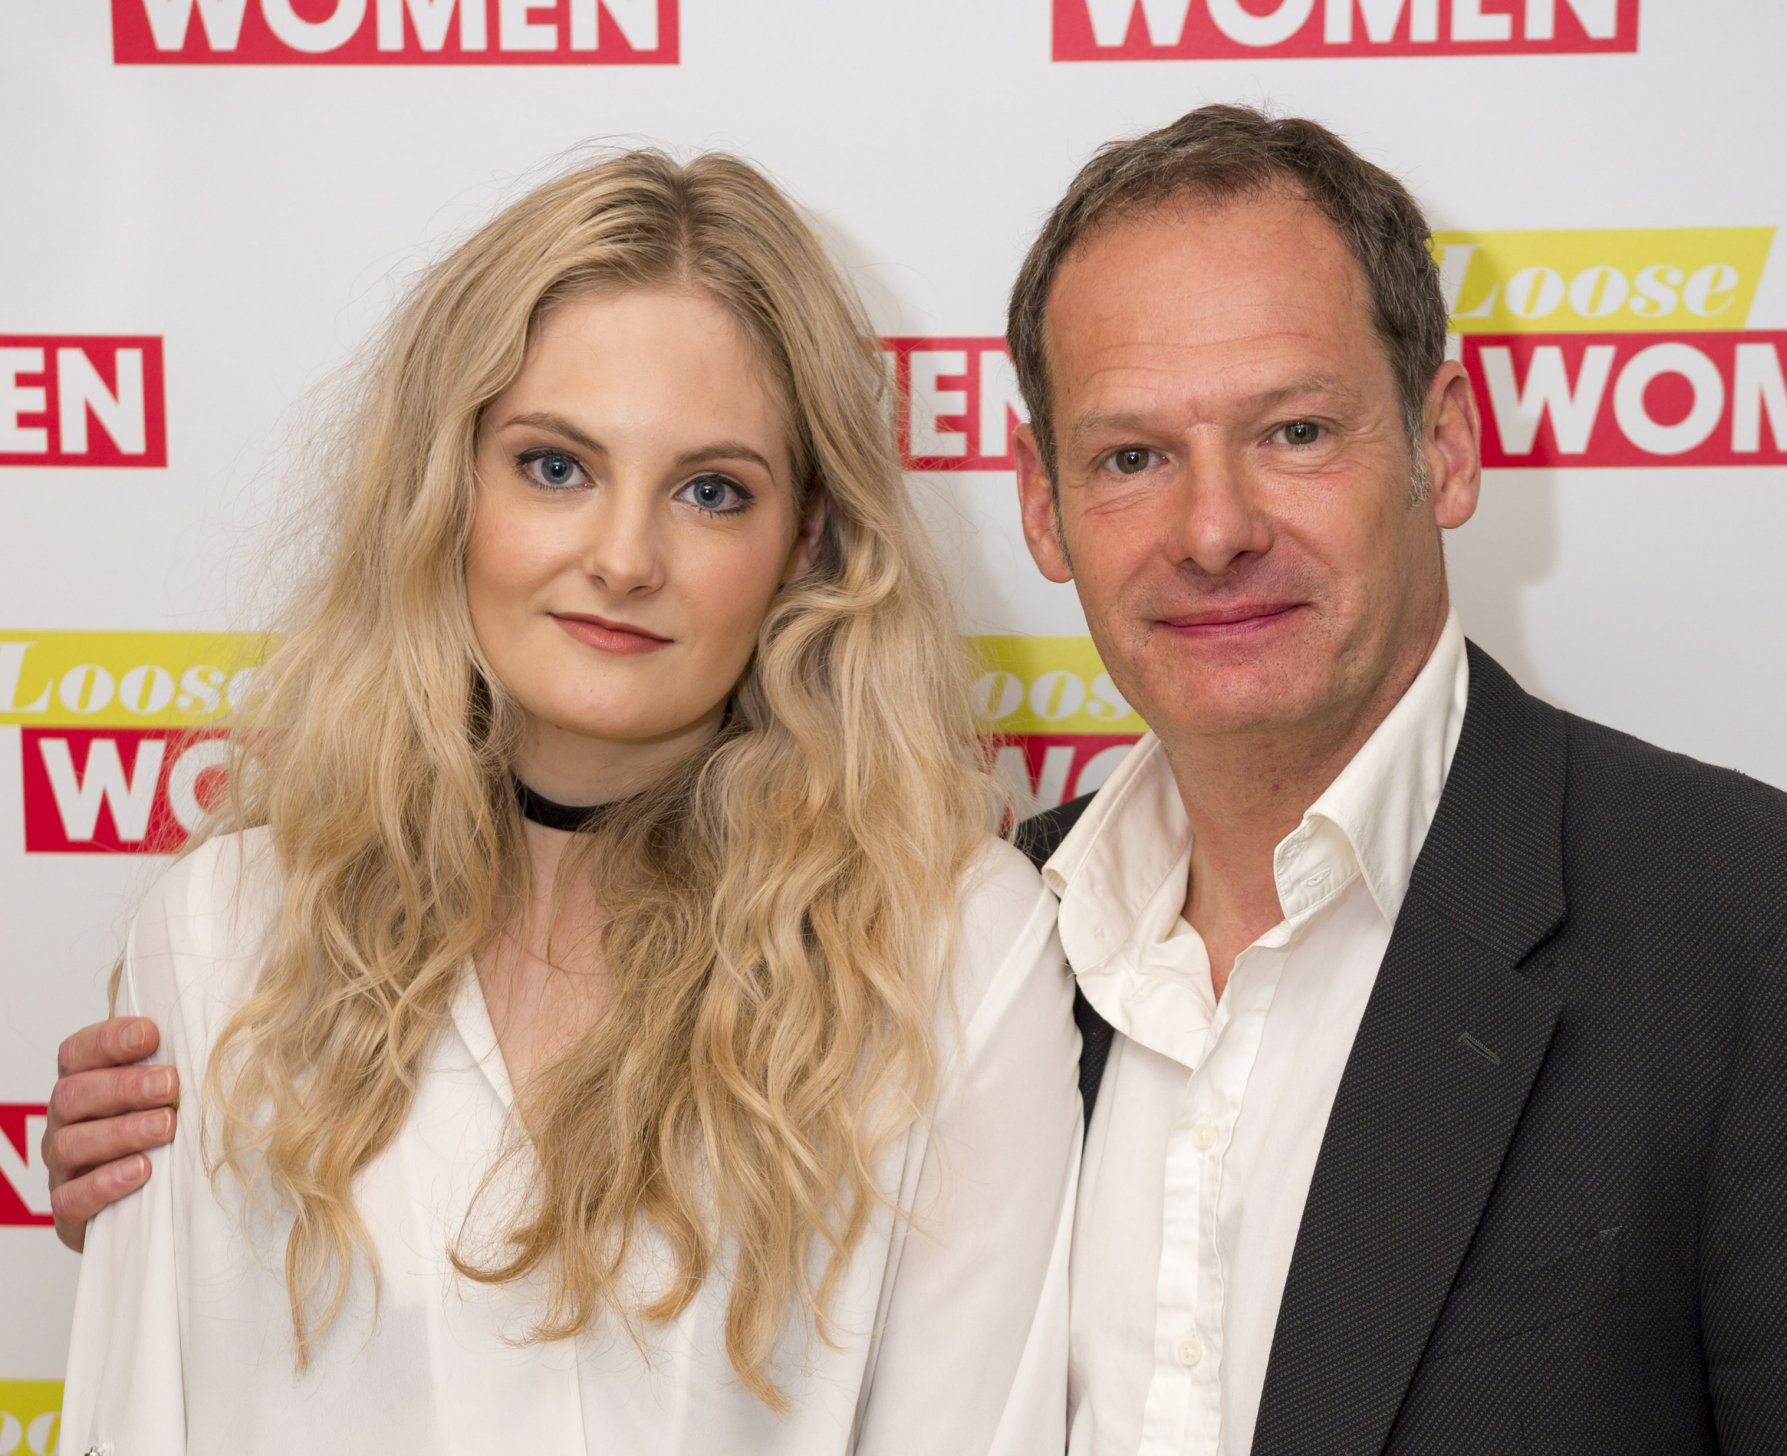 EDITORIAL USE ONLY. NO MERCHANDISING Mandatory Credit: Photo by Ken McKay/ITV/REX/Shutterstock (5790012b) Harriet Lester and Mark Lester 'Loose Women' TV show, London, UK - 26 Jul 2016